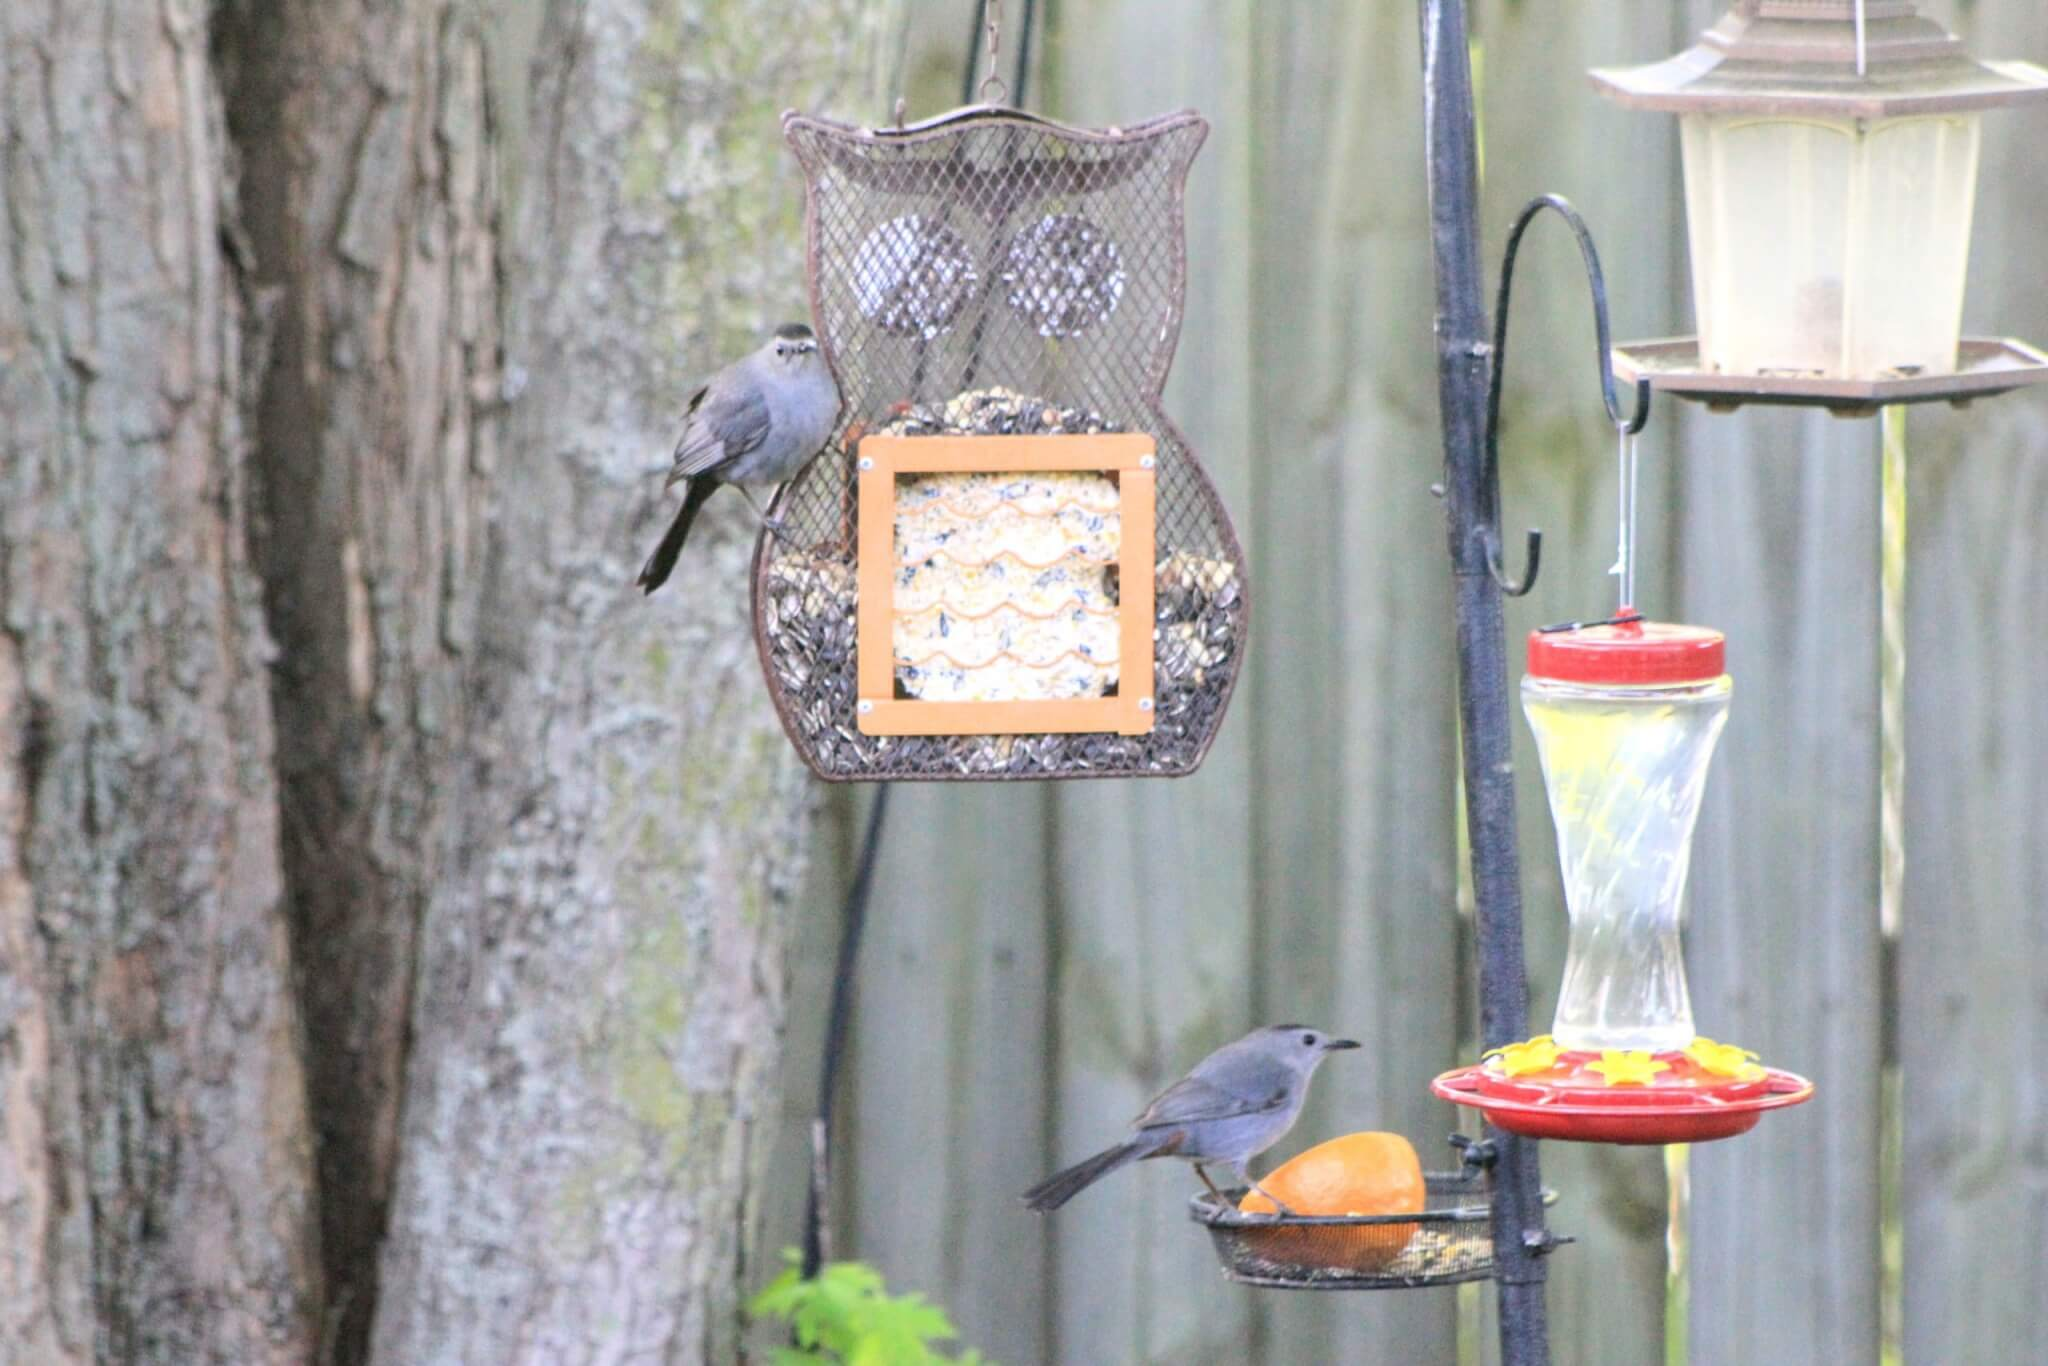 Gray Catbirds on feeders